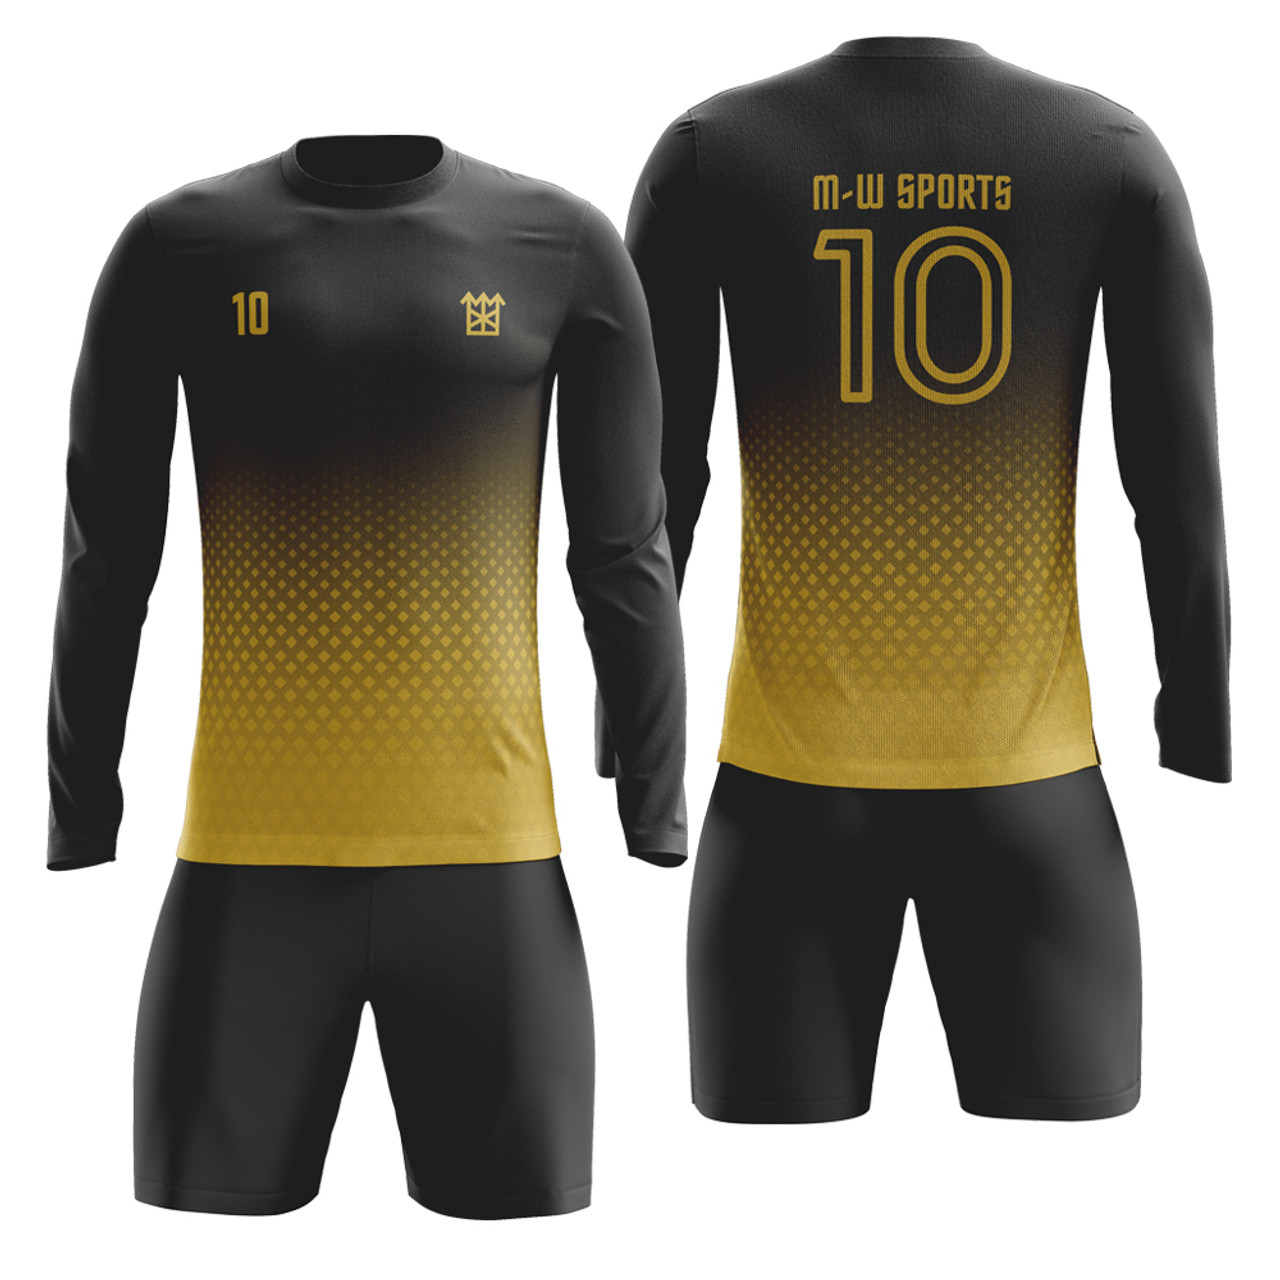 Custom High Quality cheap Custom Retro Soccer Jersey Plus Sizes buy Soccer Jerseys Online add with team name, player number , logo, free design